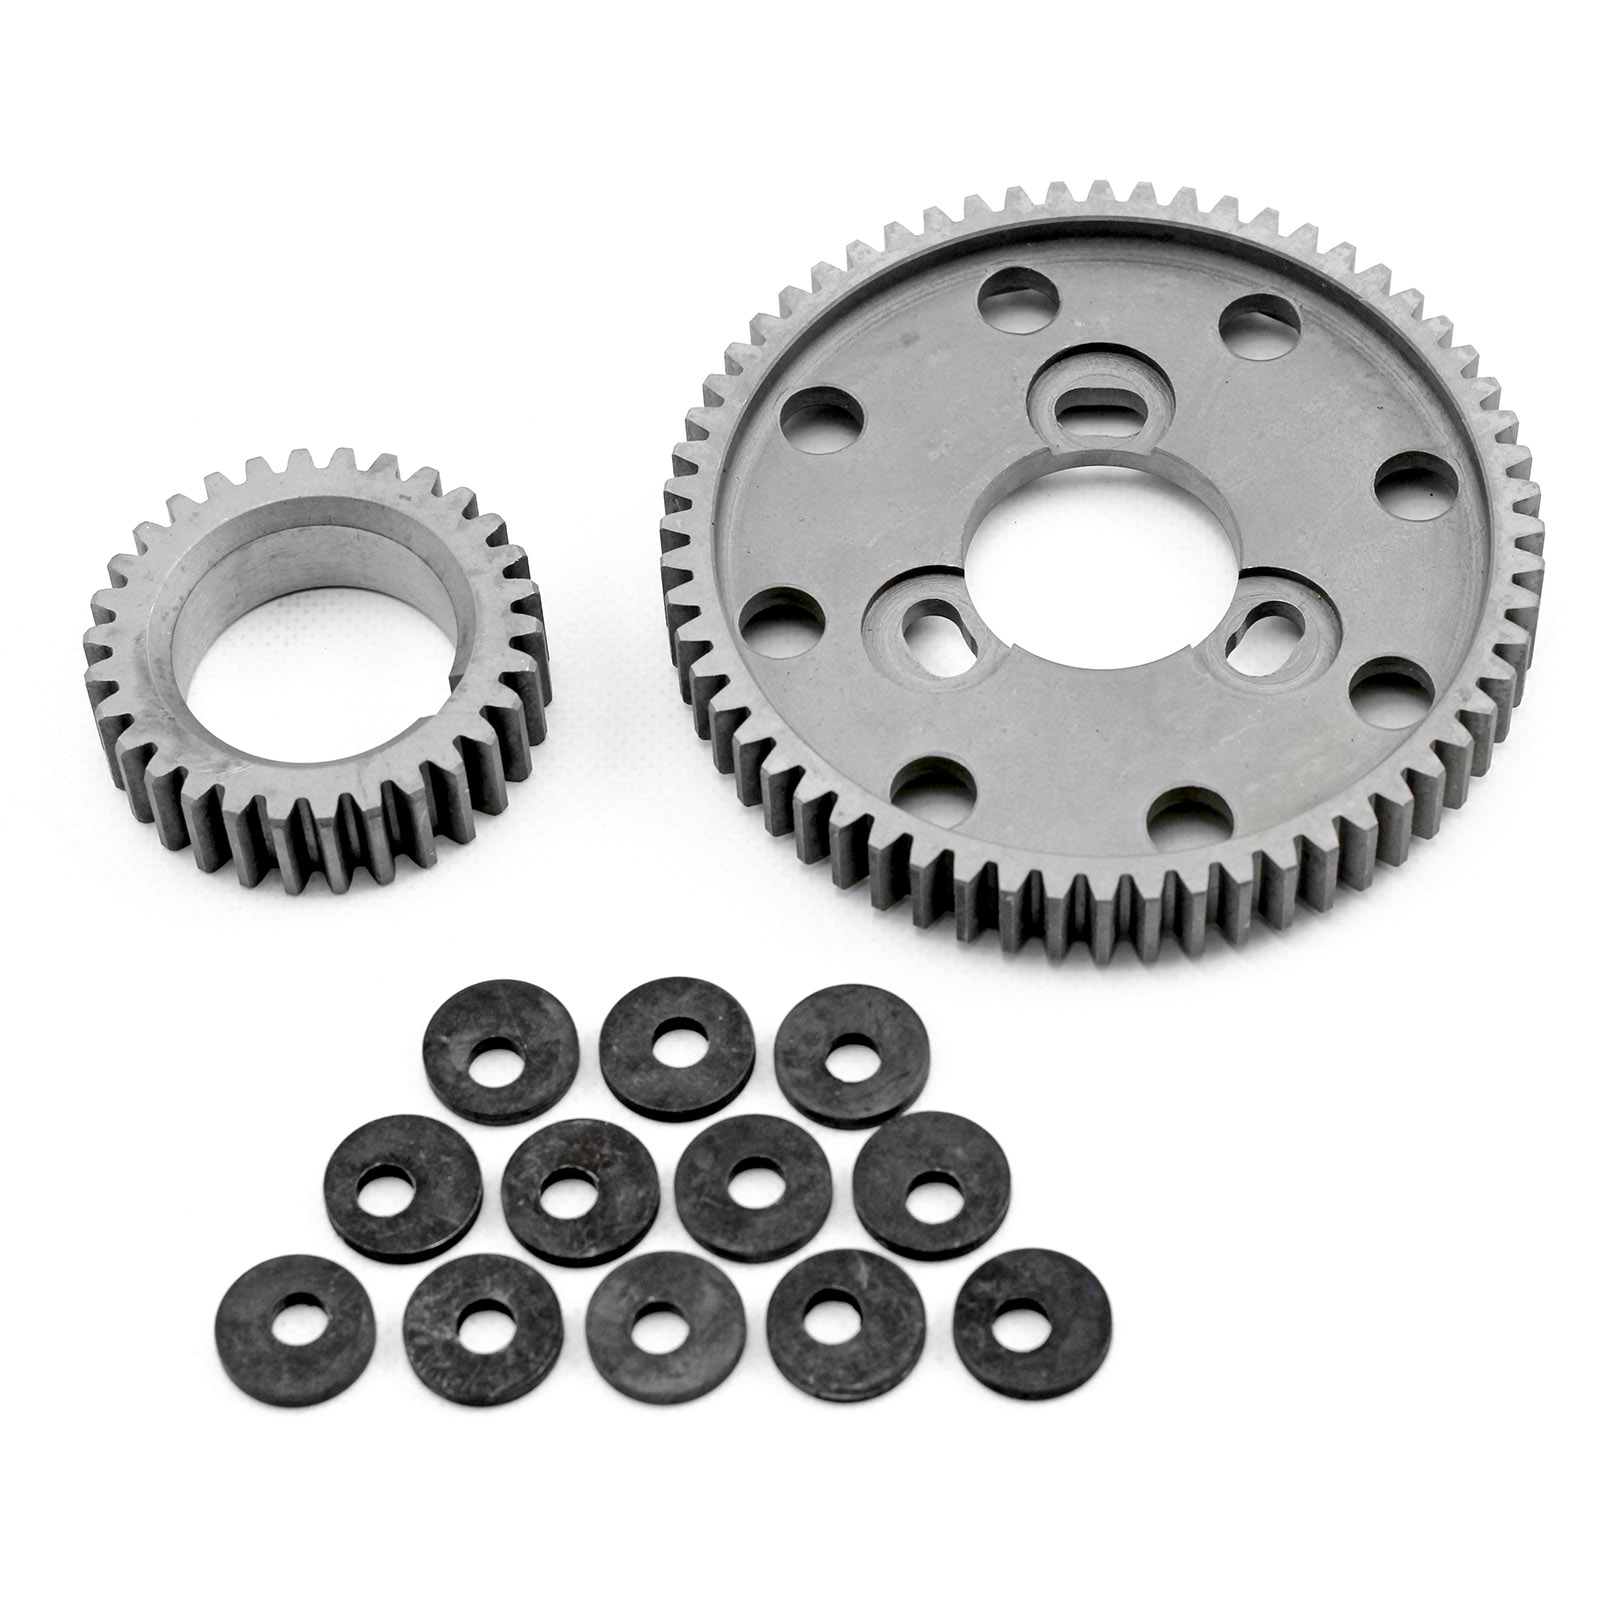 Straight Cut Cam Gear Set VW Volkswagen Engine